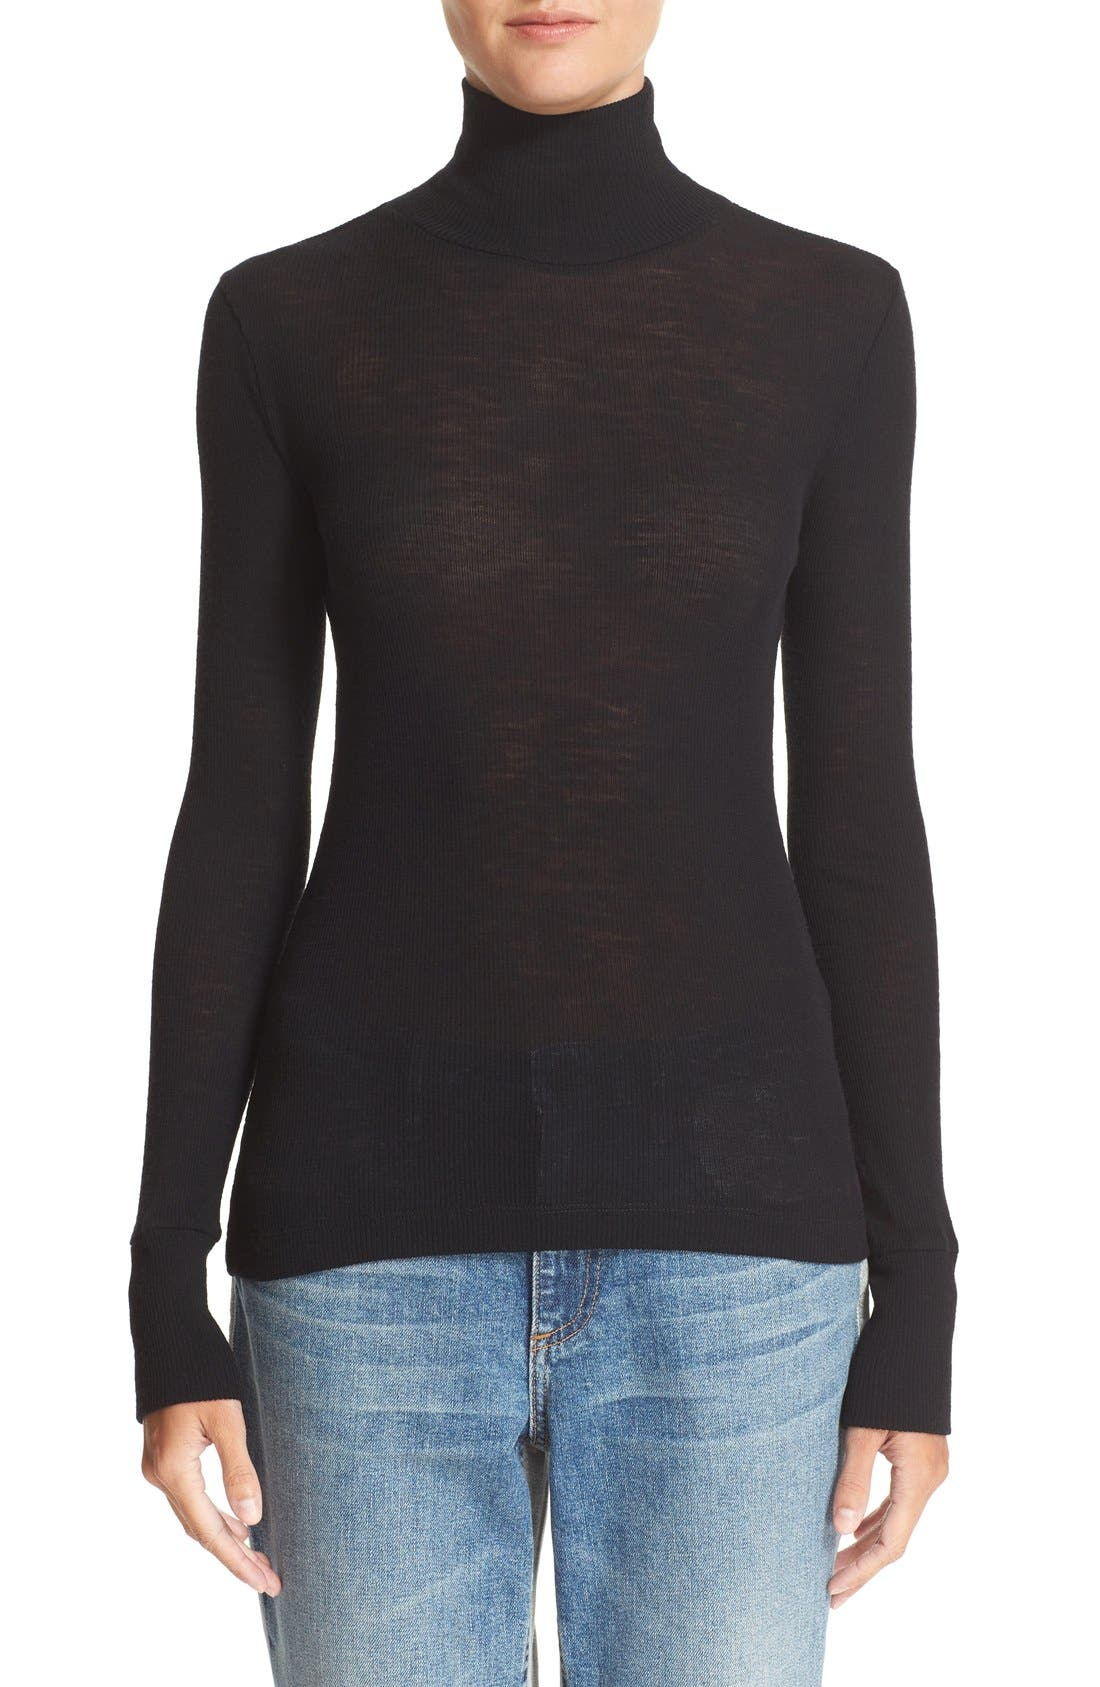 Main Image - T by Alexander Wang Sheer Wool Turtleneck